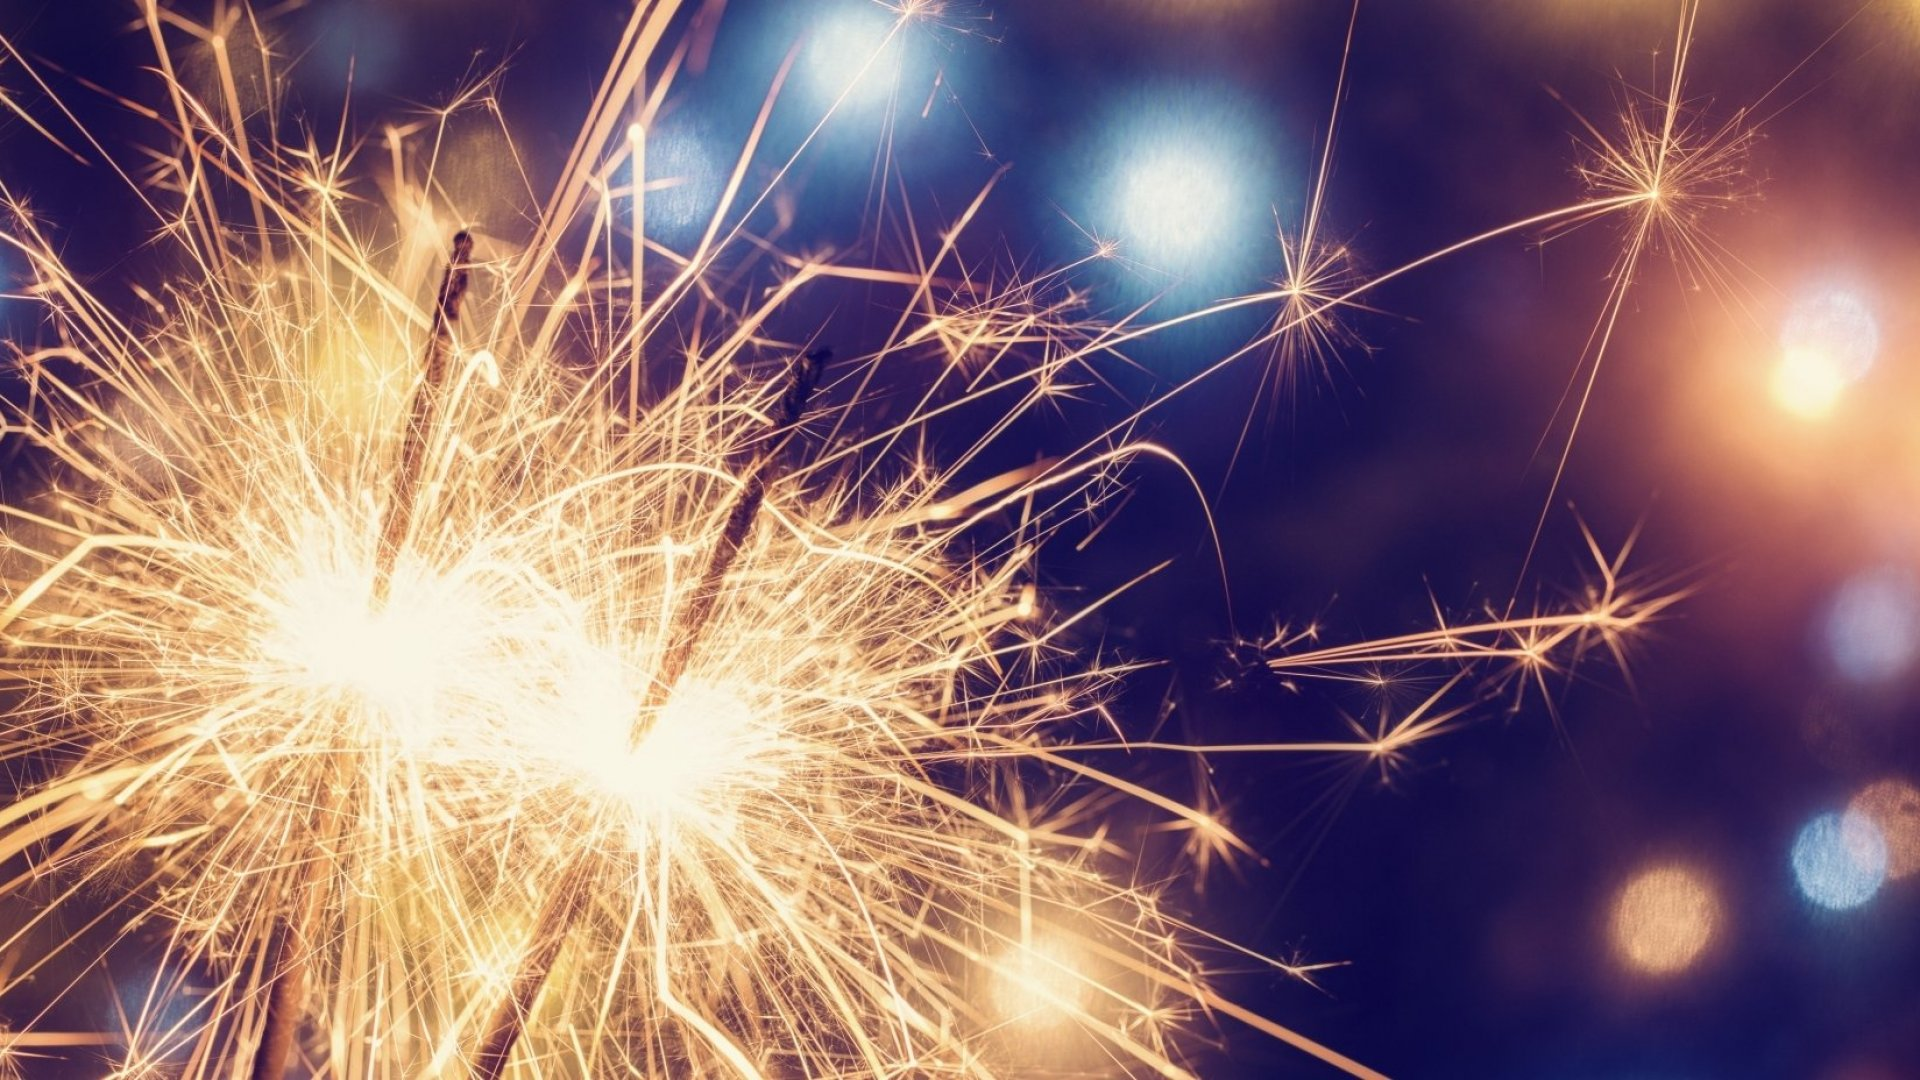 Was 2017 a Good Year? 4 Ways to Evaluate Success (Beyond Financials)